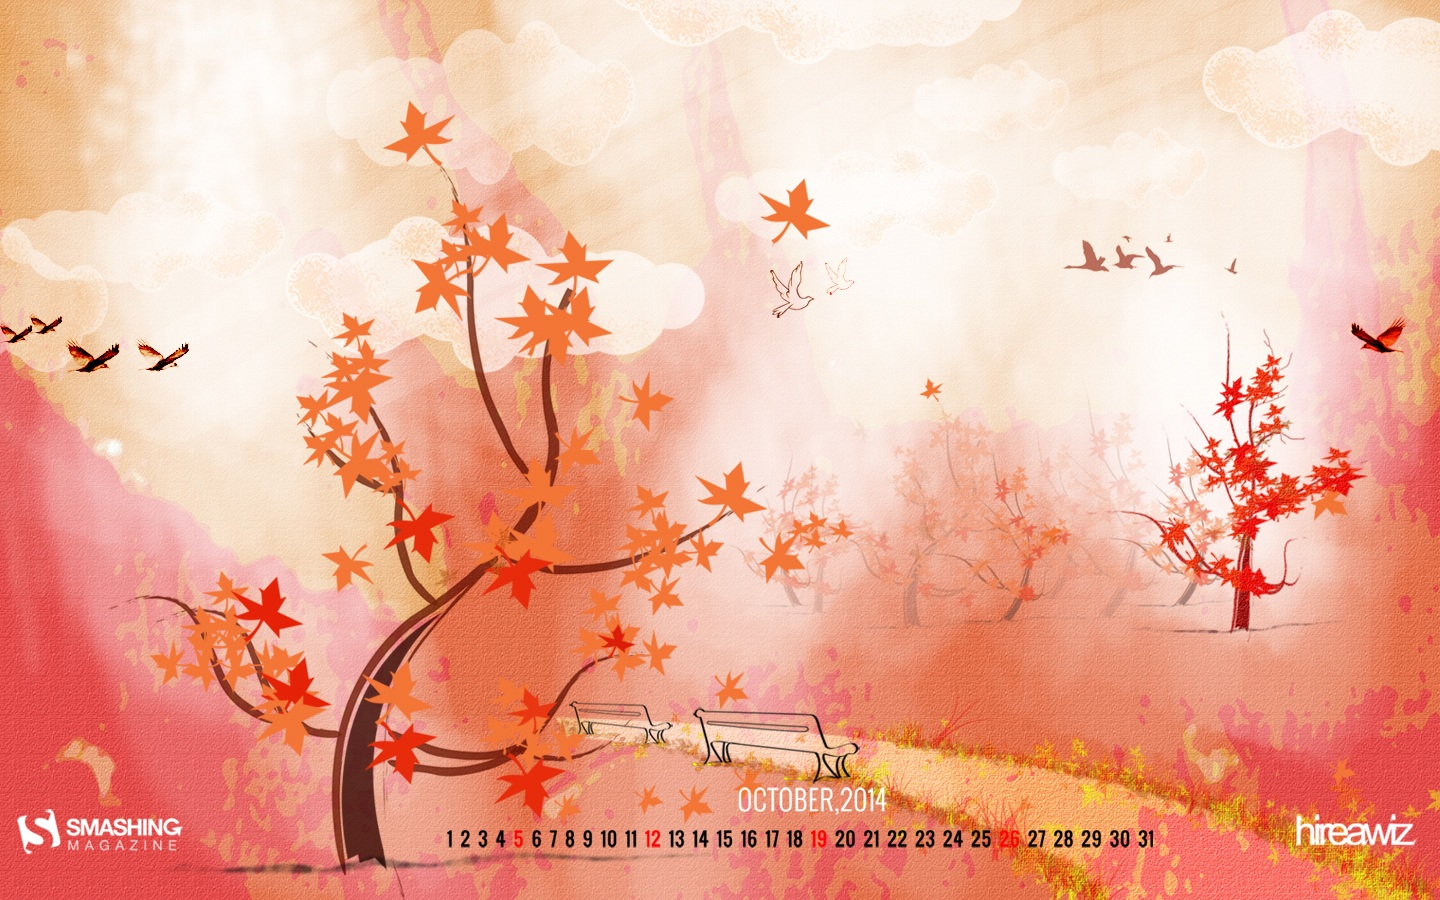 In January Calendar Wallpaper 51017